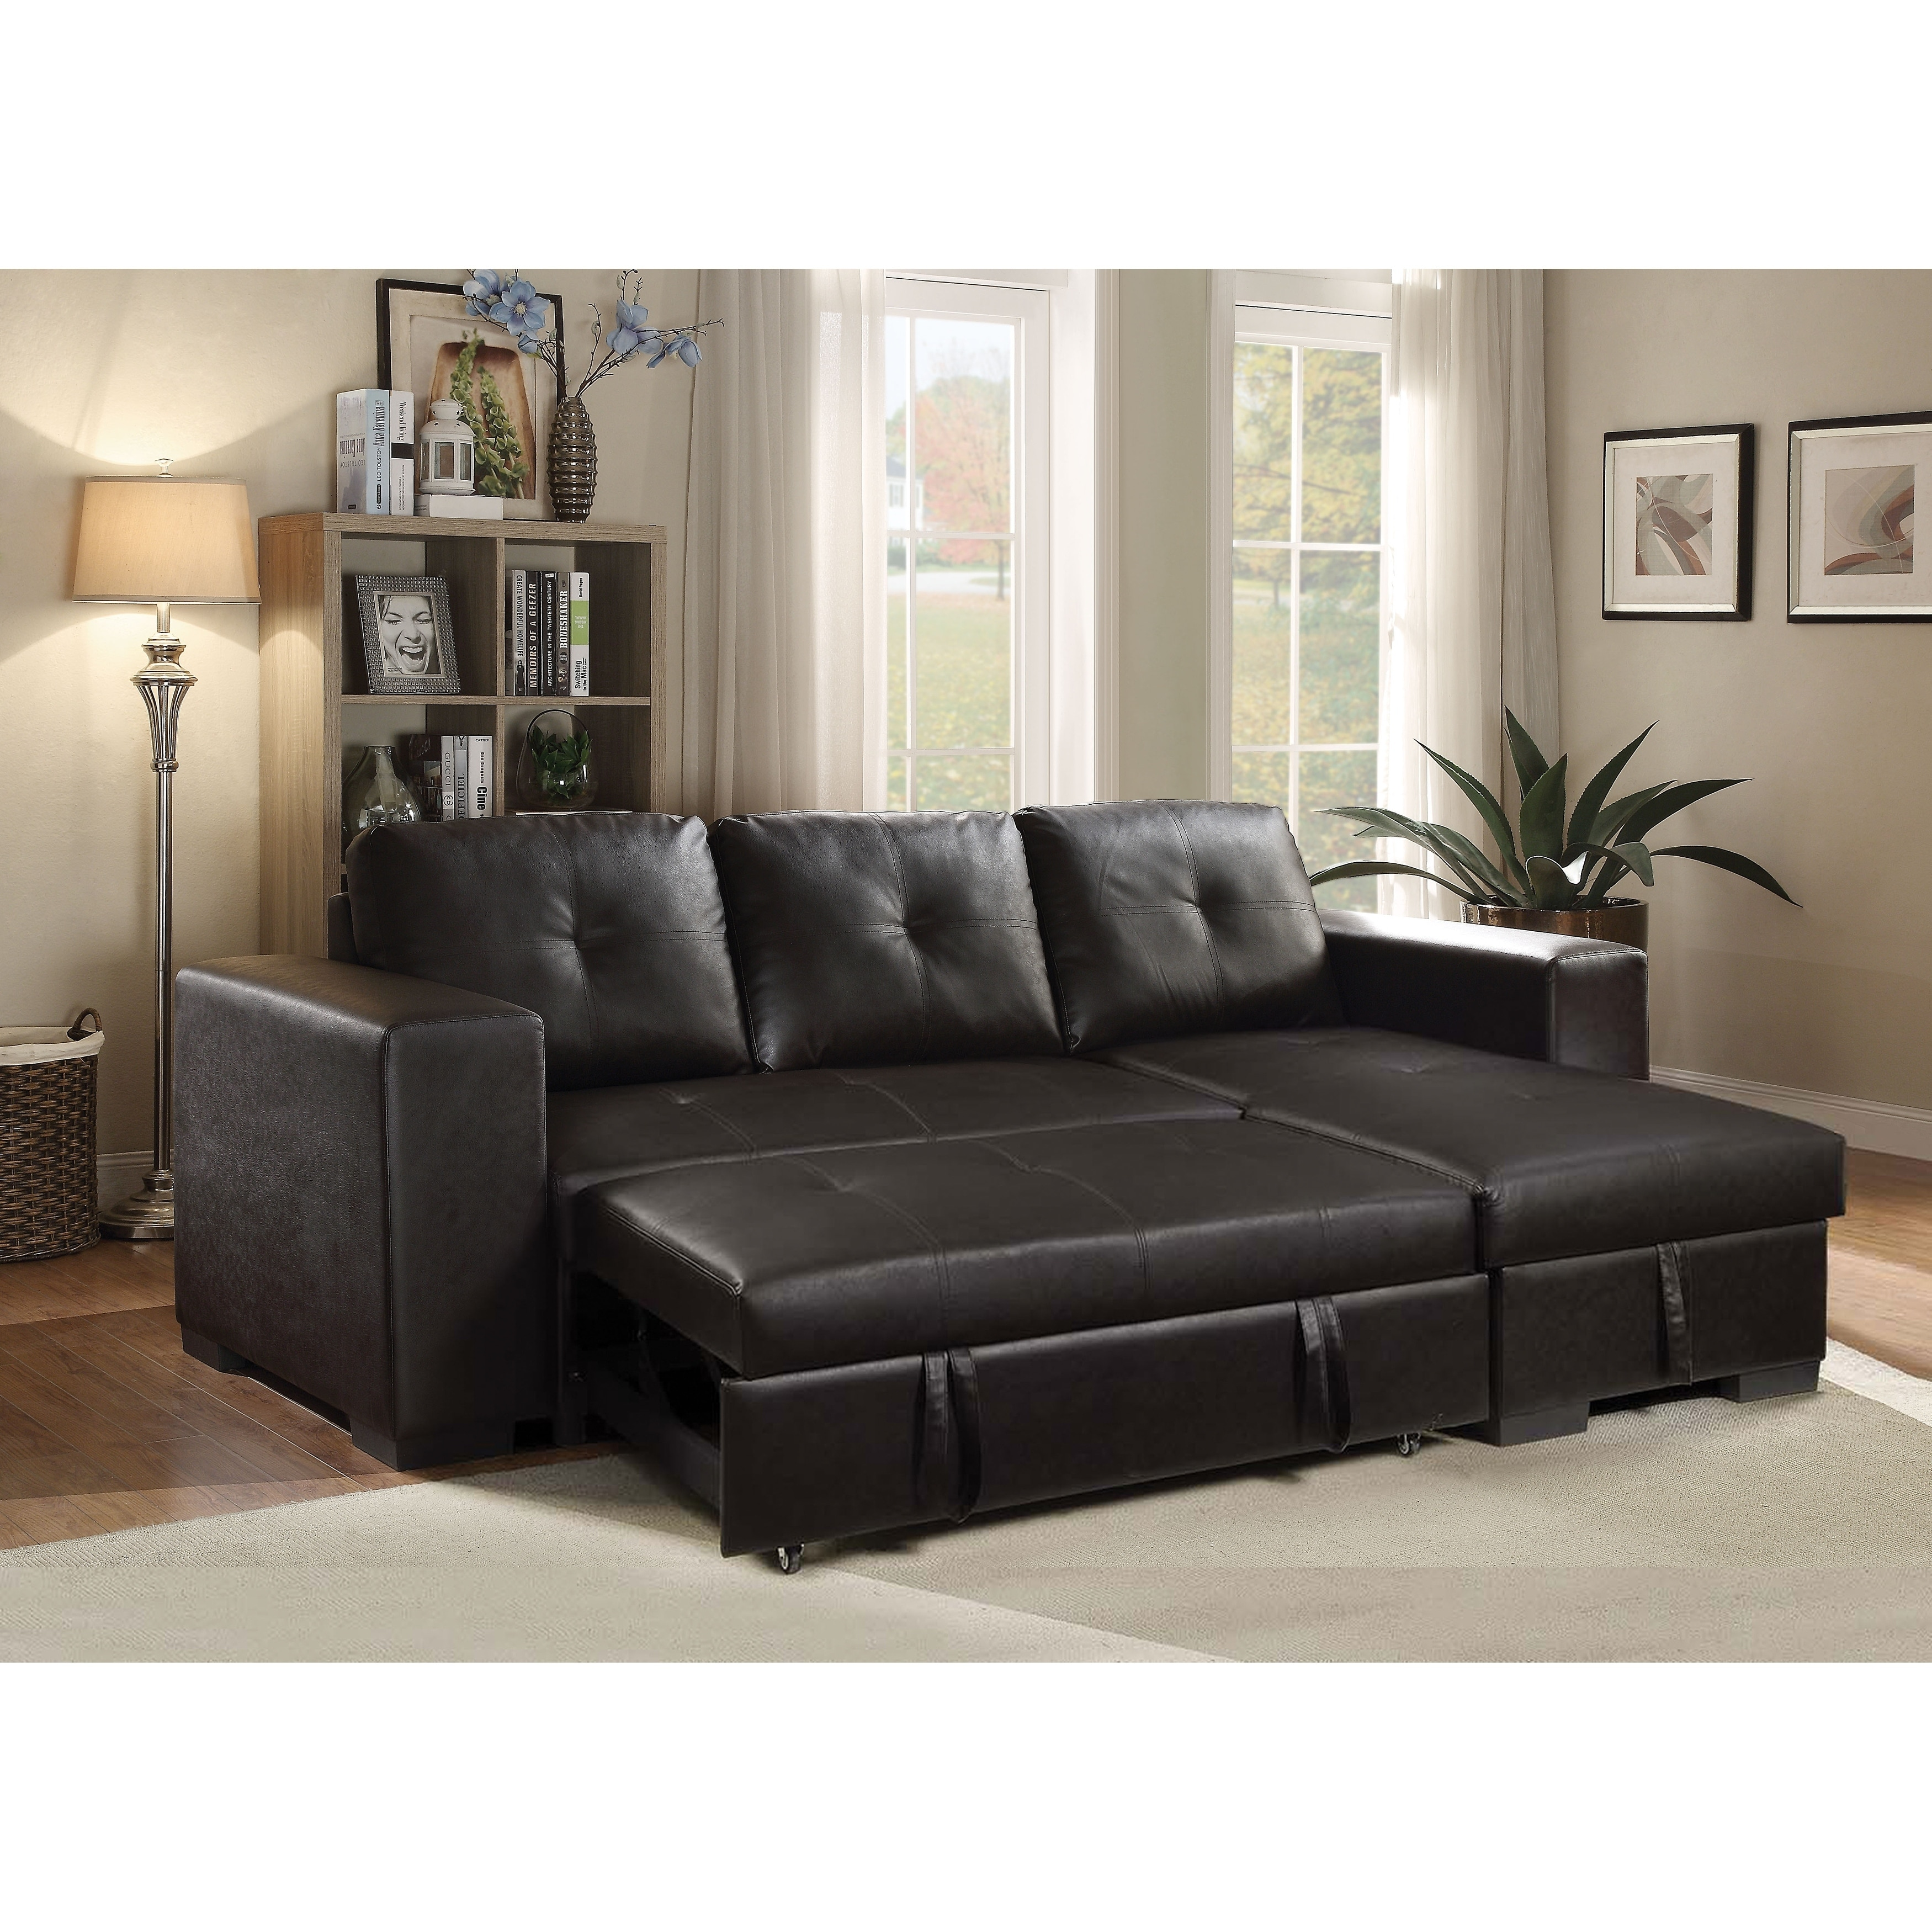 Acme Lloyd Sectional Sofa With Sleeper In Black Faux Leather